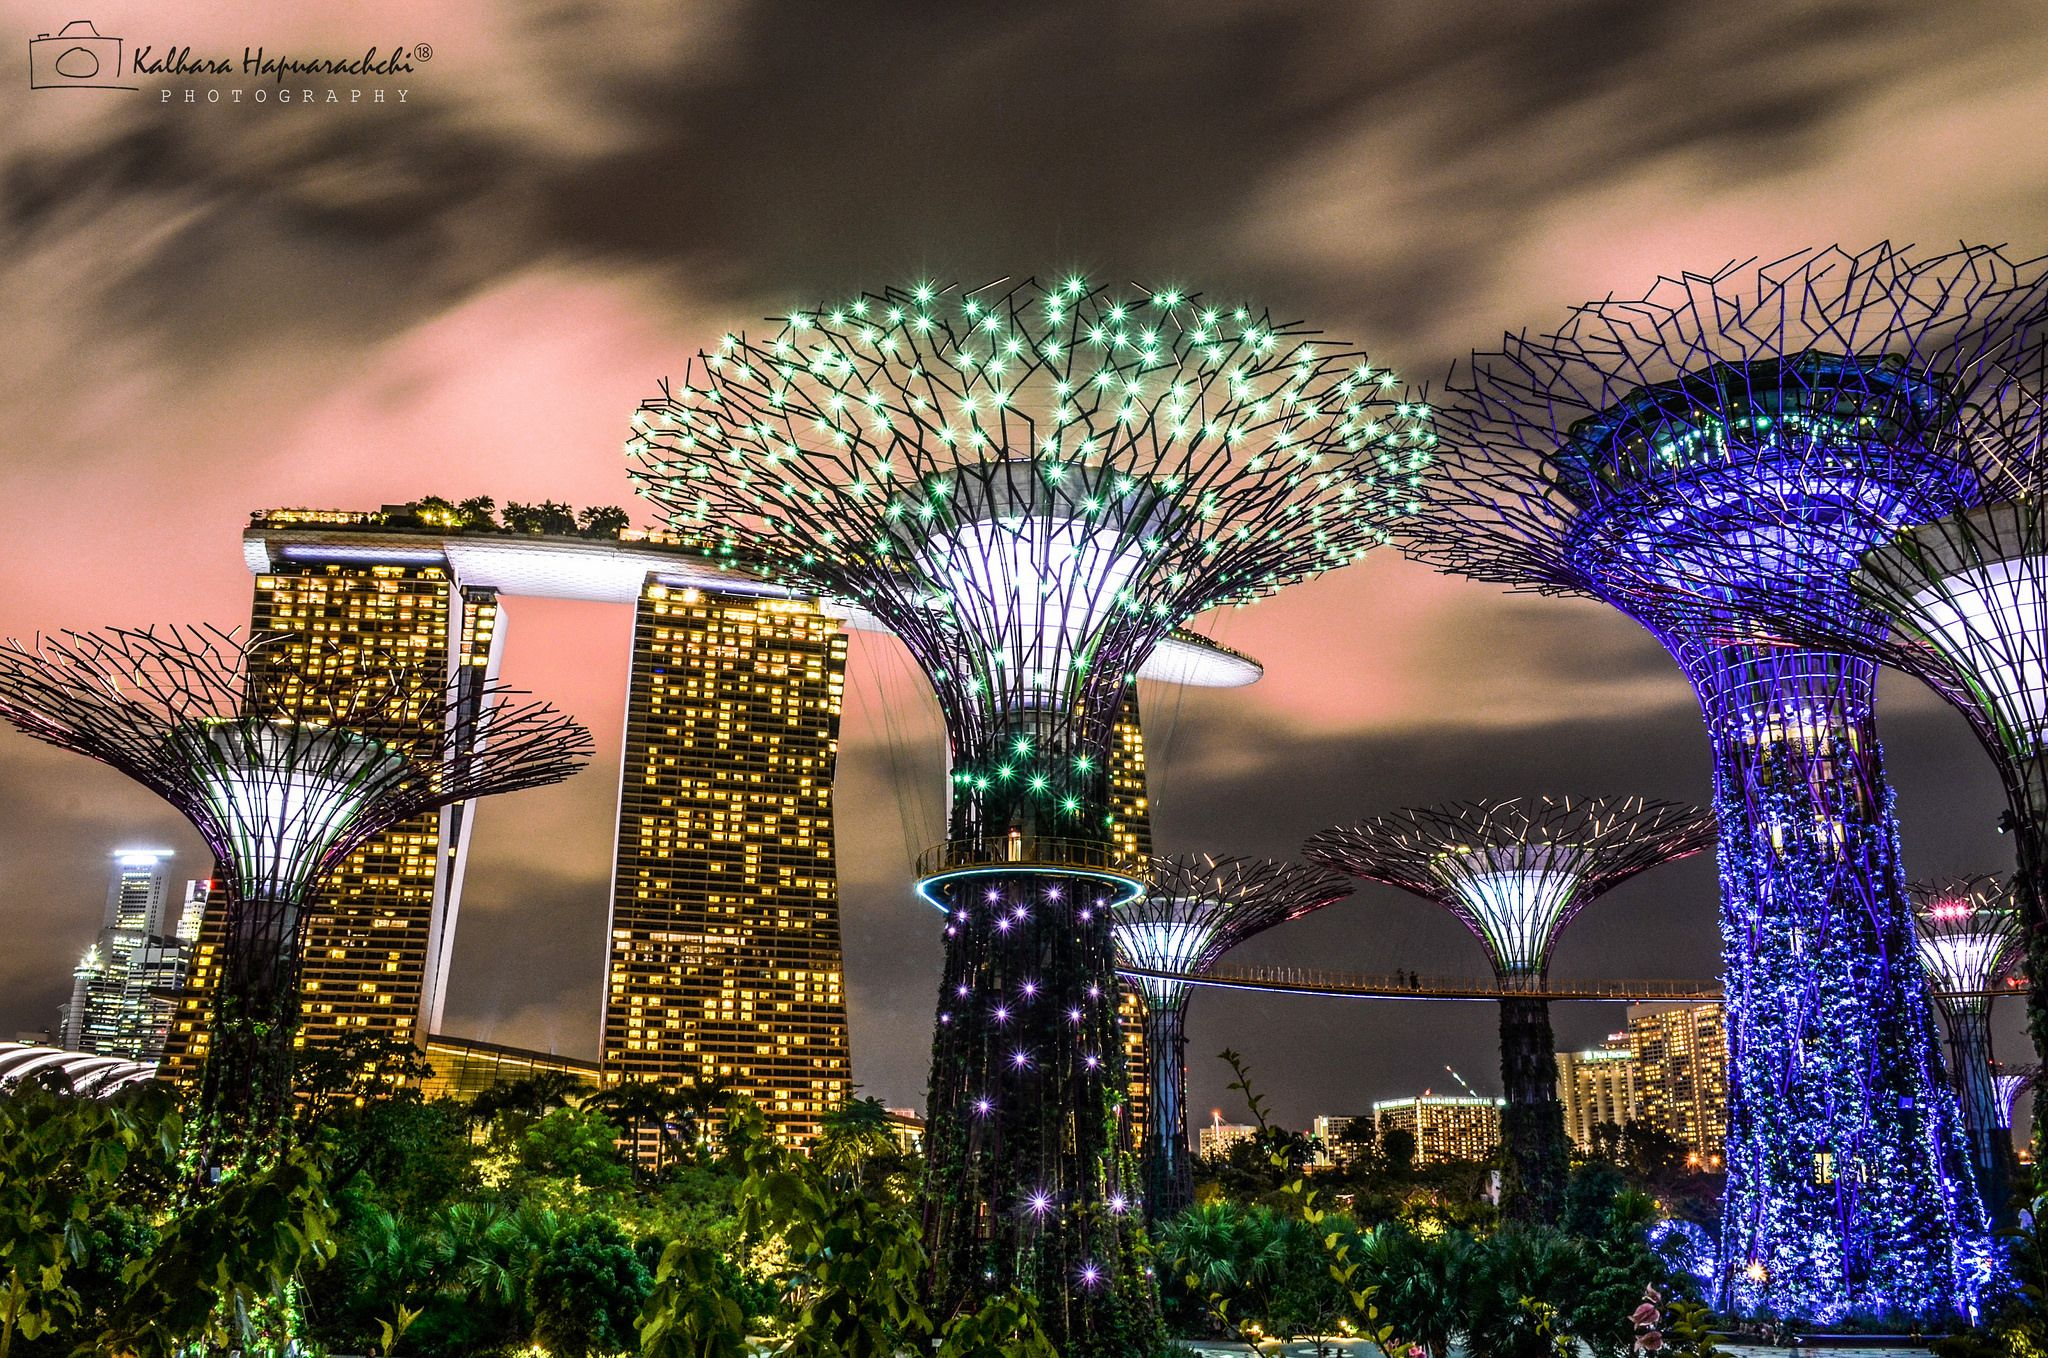 httpsflickrppnbsk9 marina bay sands garden by the bay at night ideal time to visit gardens by the bay in singapore is when night falls - Garden By The Bay Music